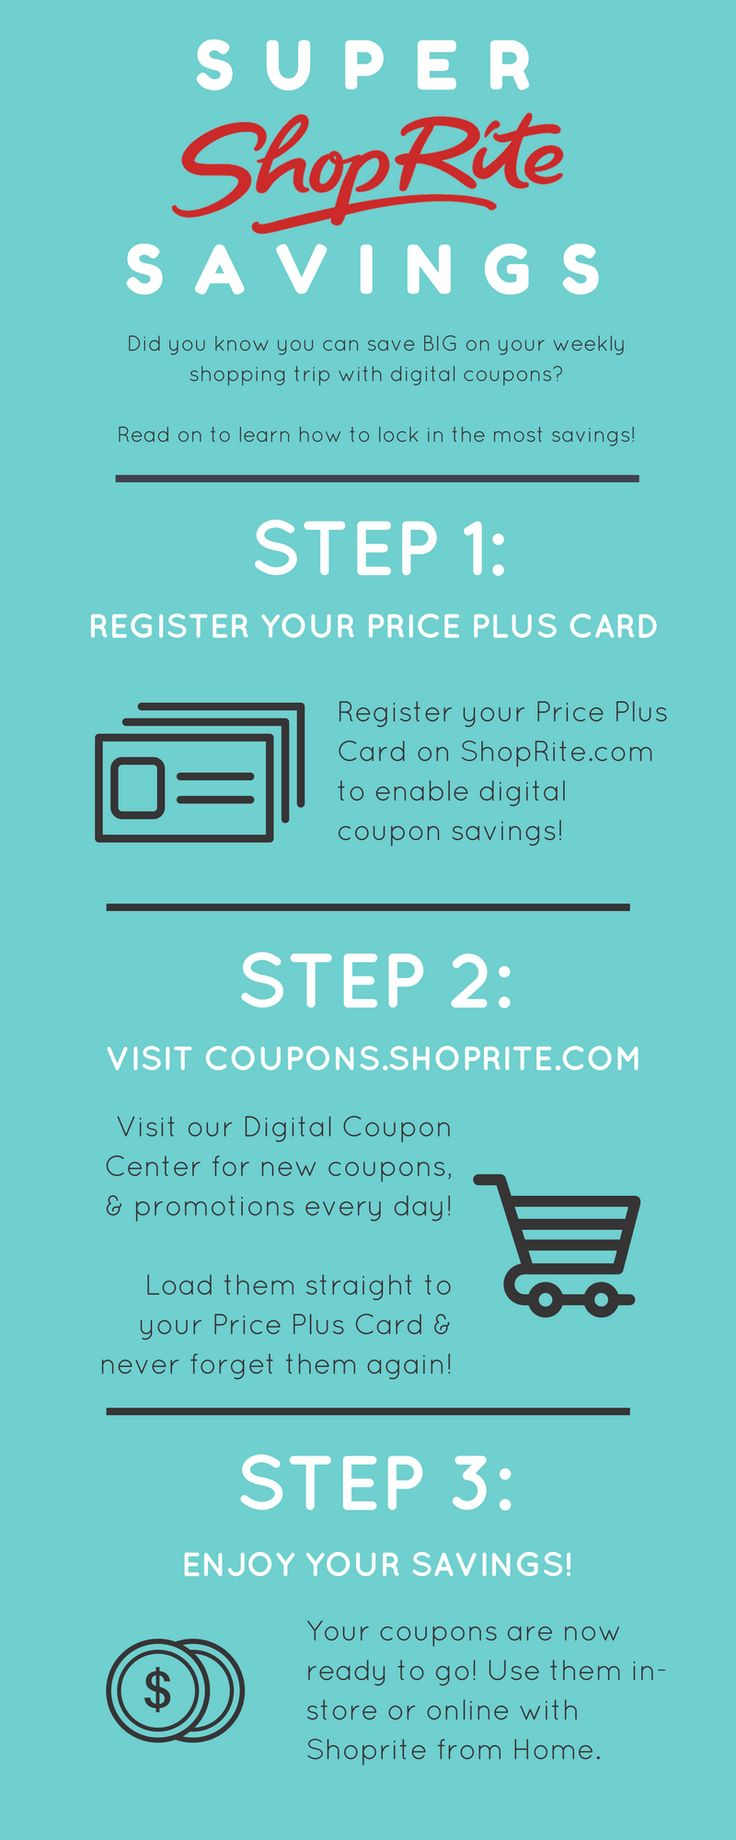 Did you know you can save BIG on your weekly shopping trip with digital coupons? Follow our 3 easy steps before your next visit to ShopRite for serious savings!